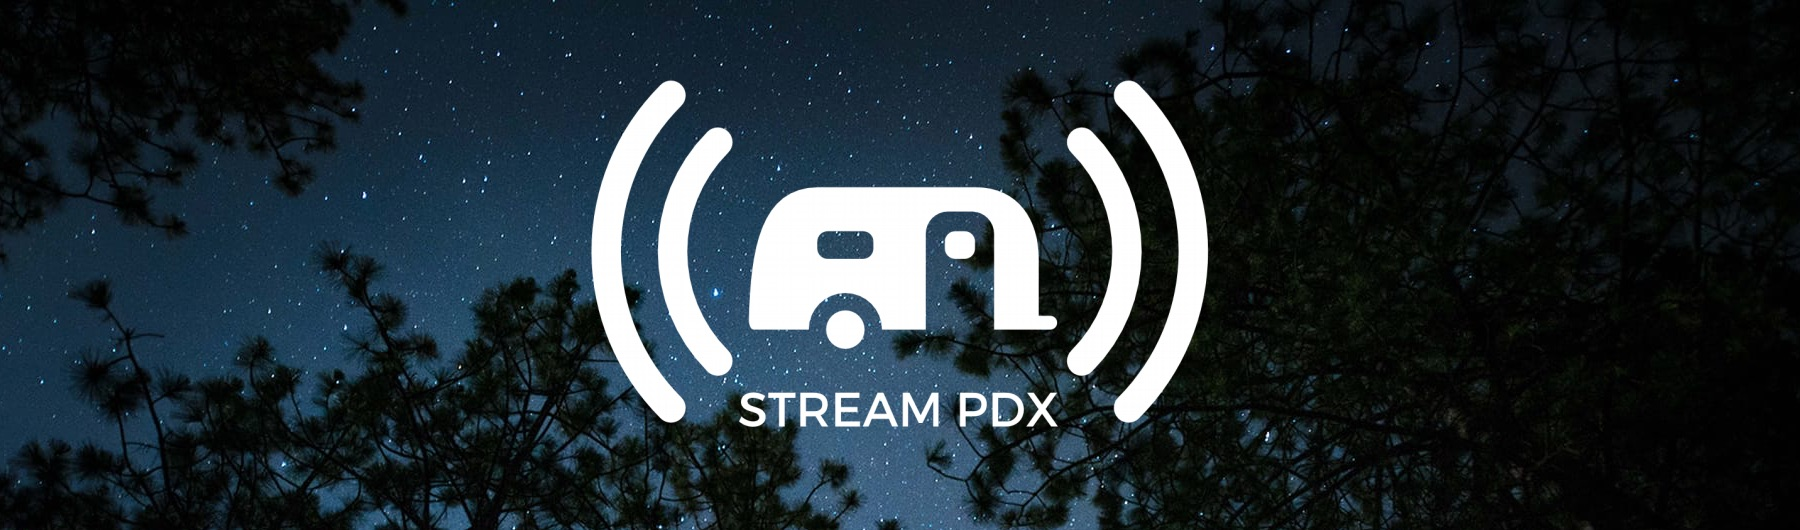 Monthly Stream PDX Meetup - August 4 at 6:00 PM